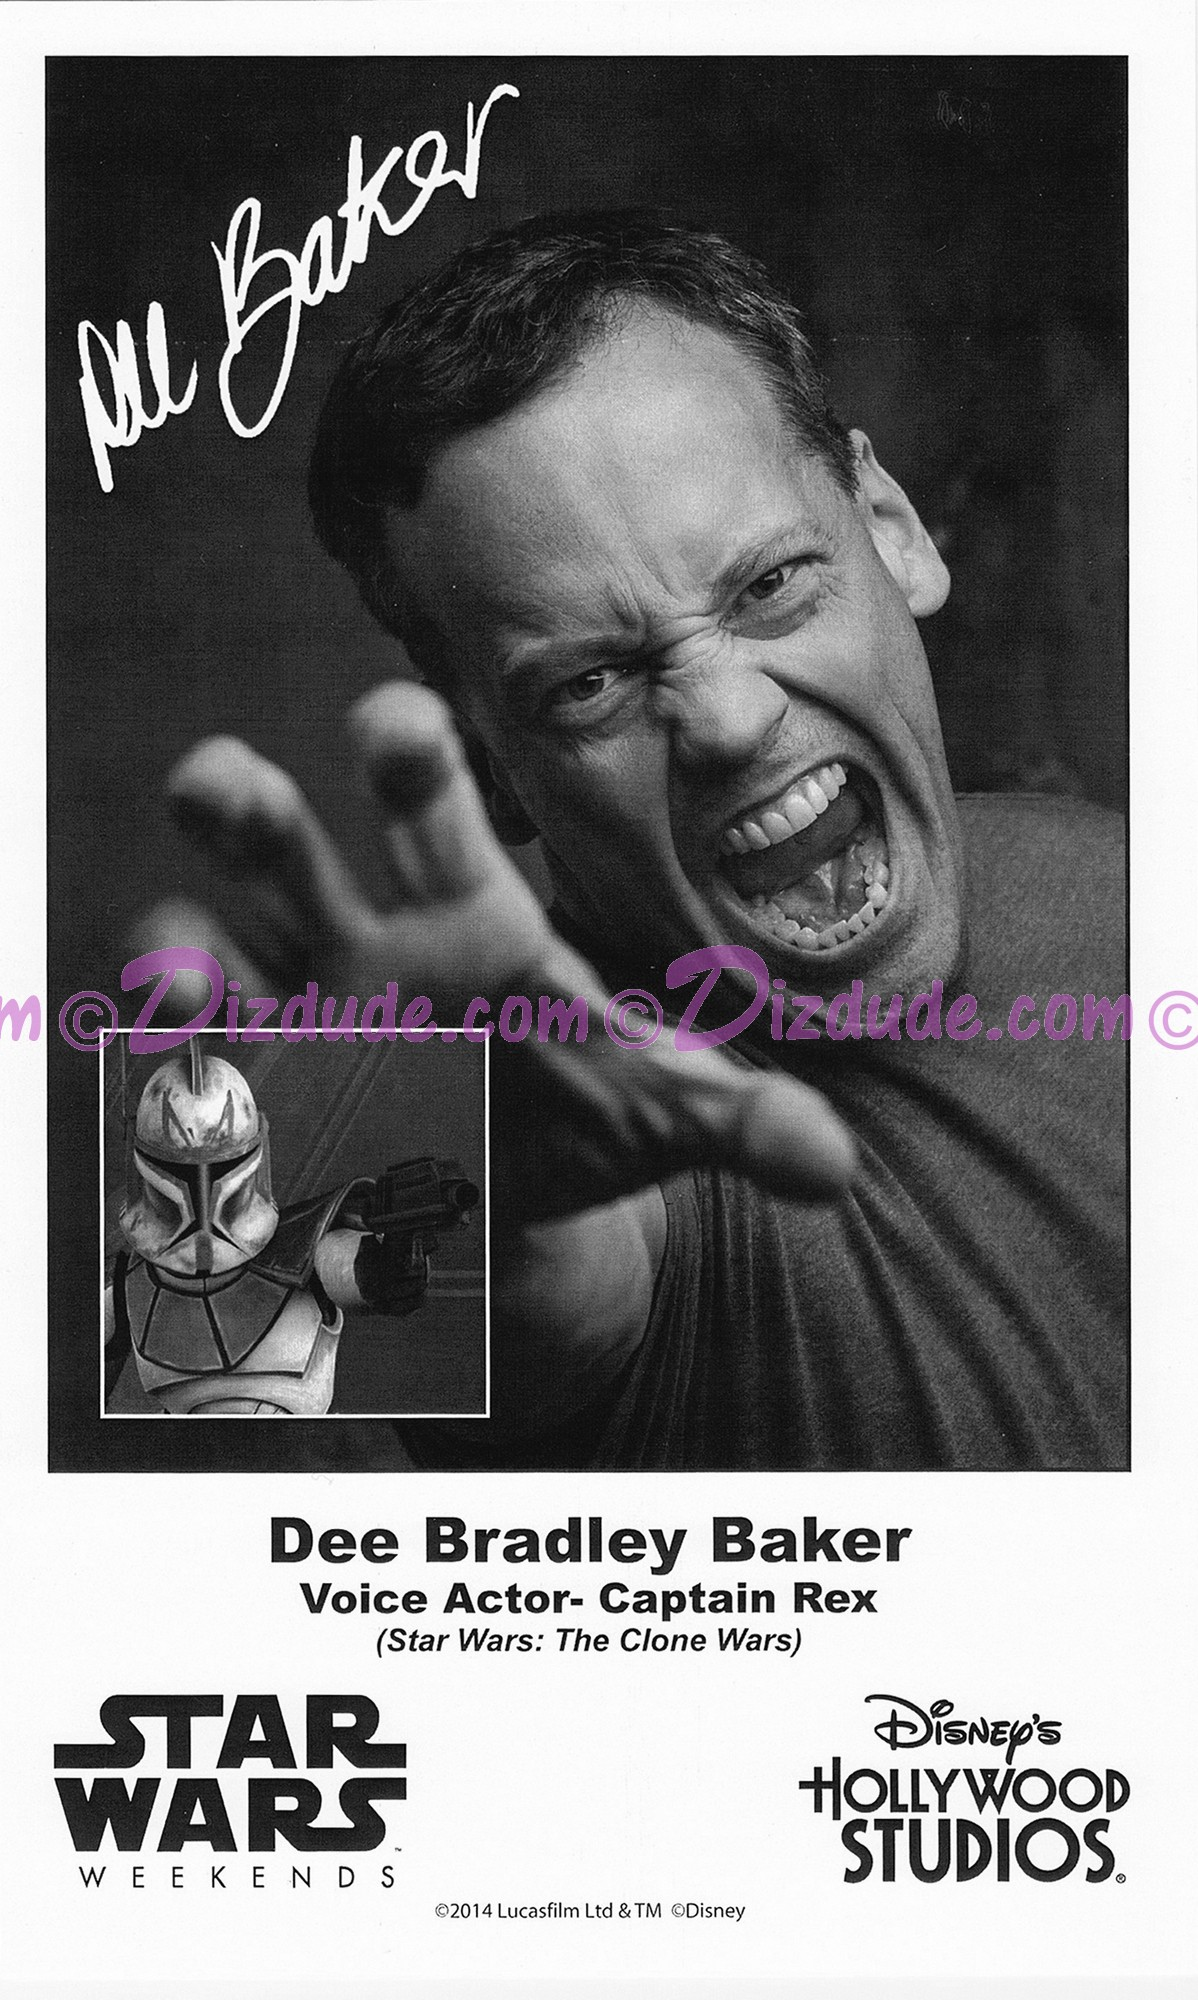 Dee Bradley Baker the voice of Captain Rex Presigned Official Star Wars Weekends 2014 Celebrity Collector Photo © Dizdude.com